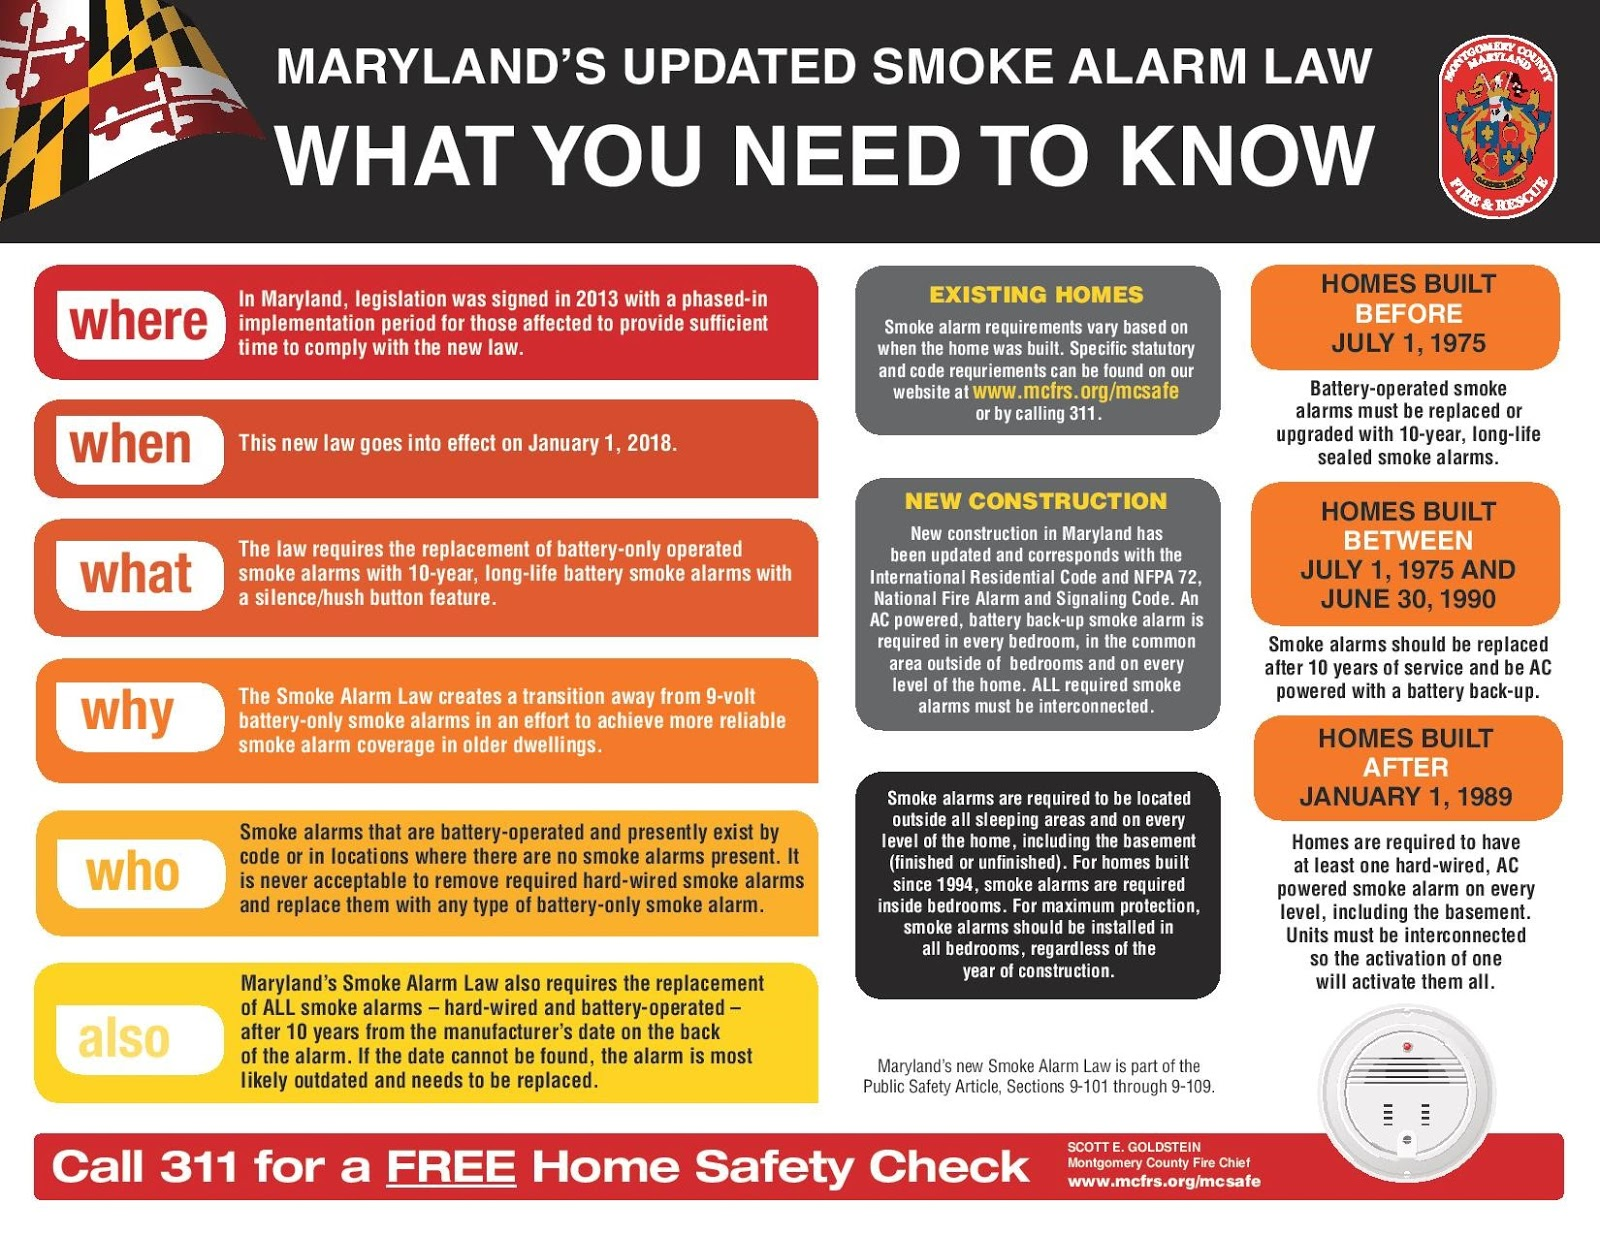 Montgomery County Fire Rescue News Information Updates To House Wiring Smoke Alarms What If I Need Help Or Have Questions Please Visit Us At Mcfrsorg Mcsafe Call 311 For Assistance